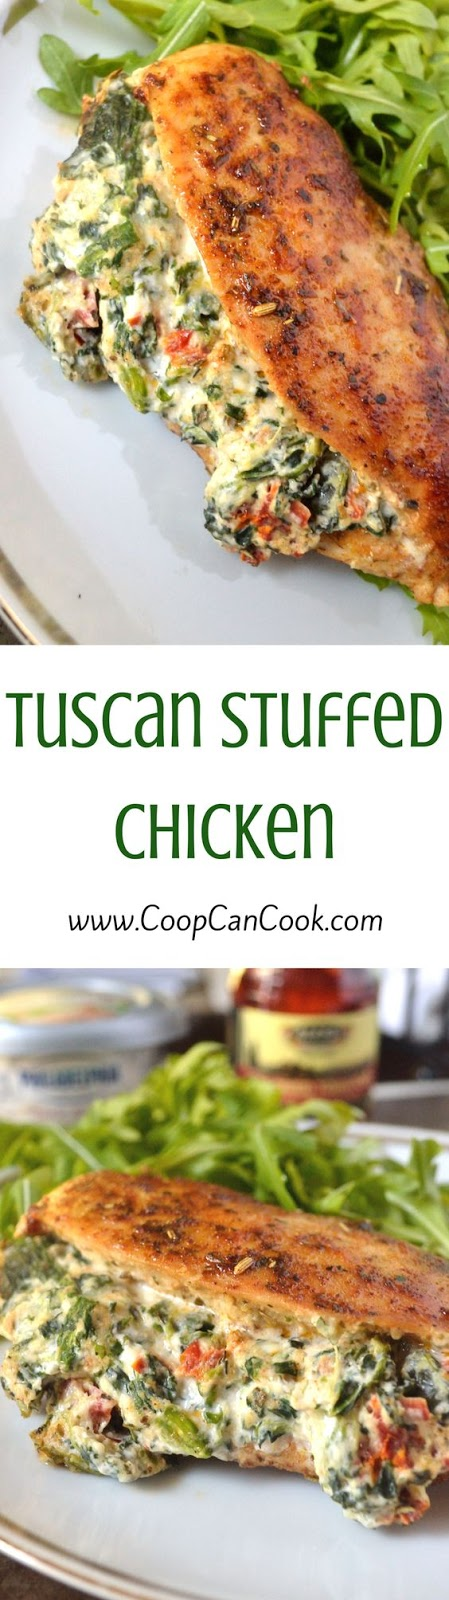 Stuffed Tuscan Chicken